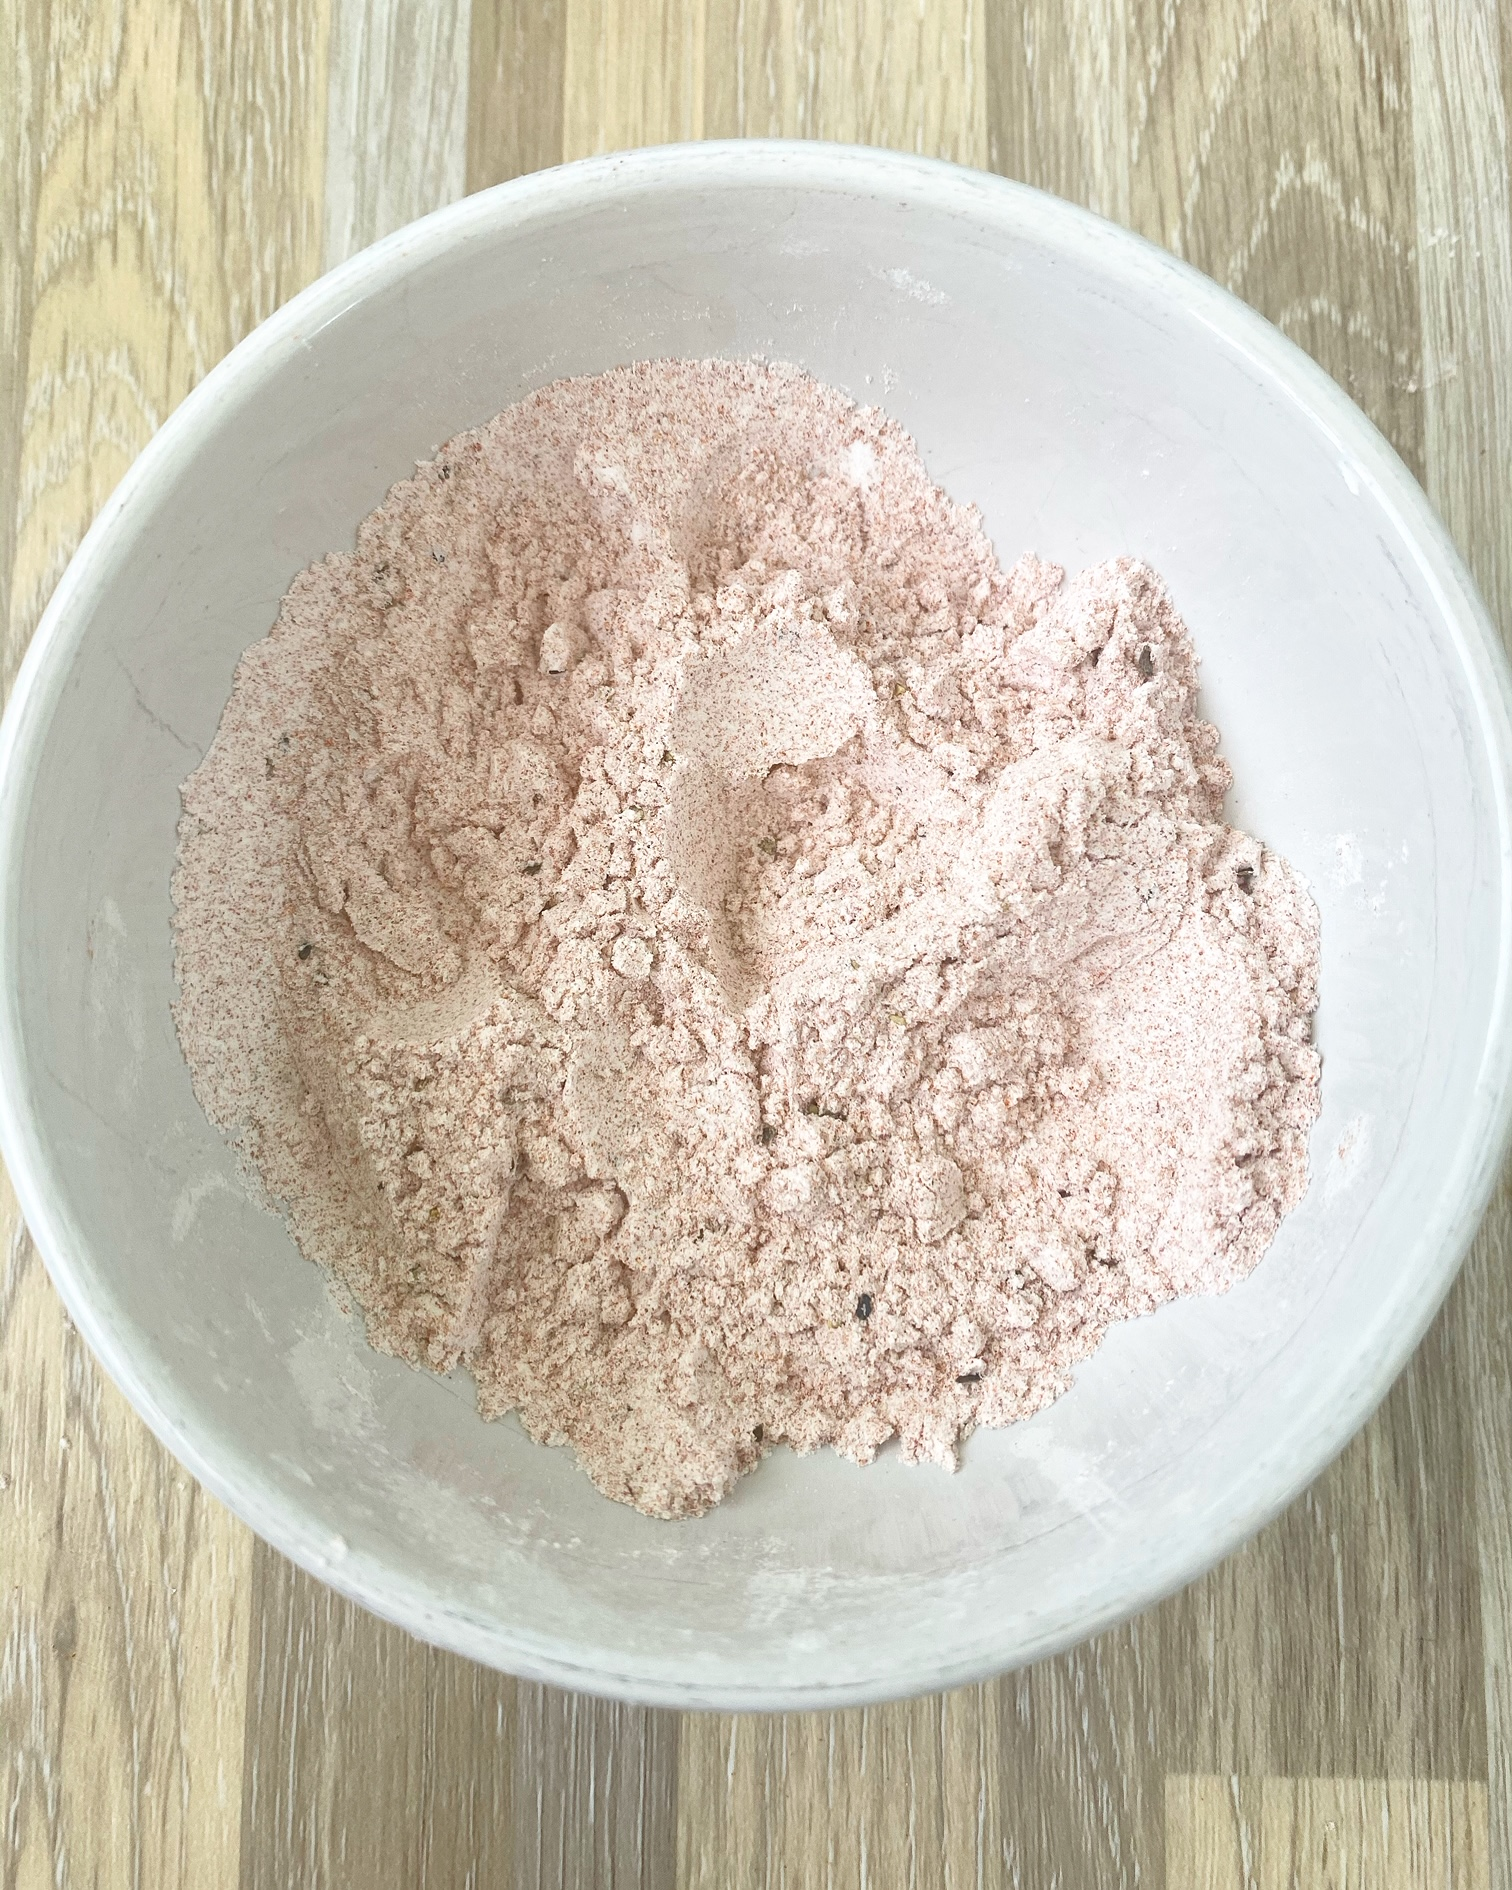 paprika flour in a white bowl